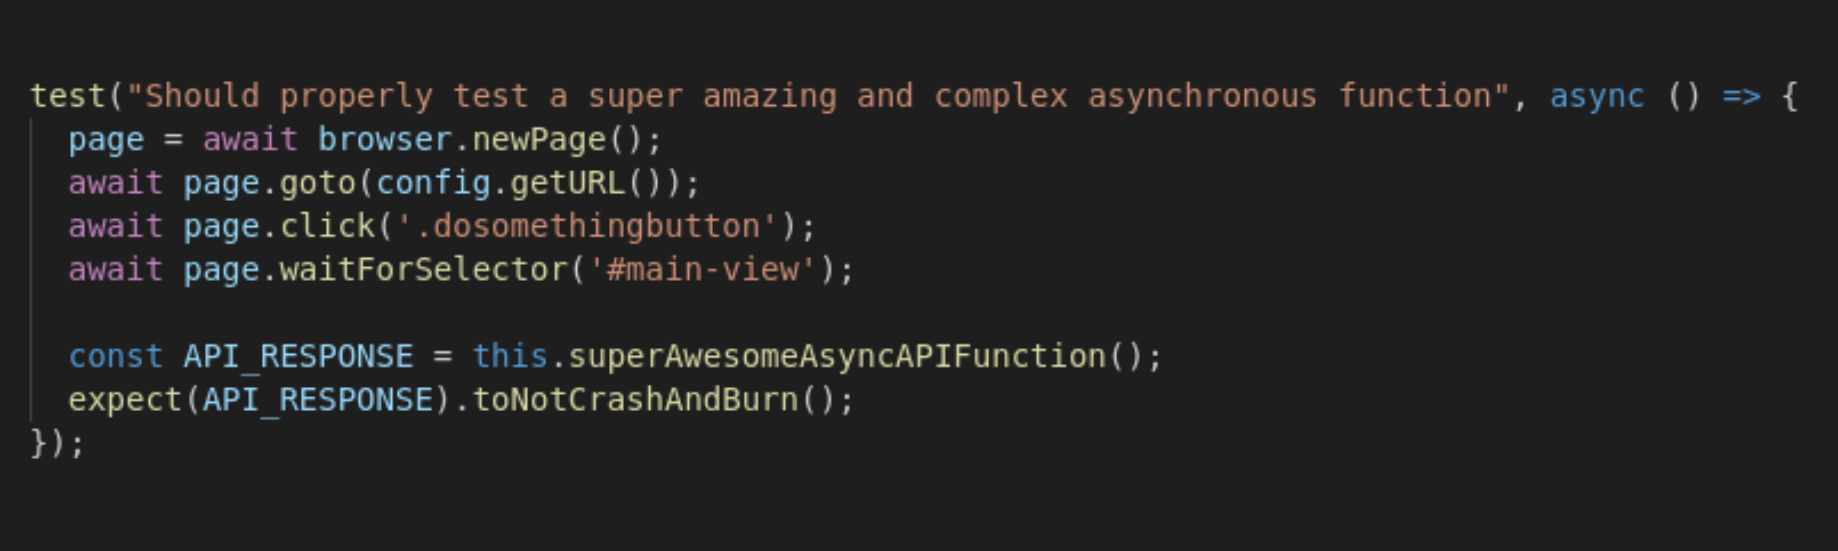 Dealing with Asynchrony when Writing End-To-End Tests with